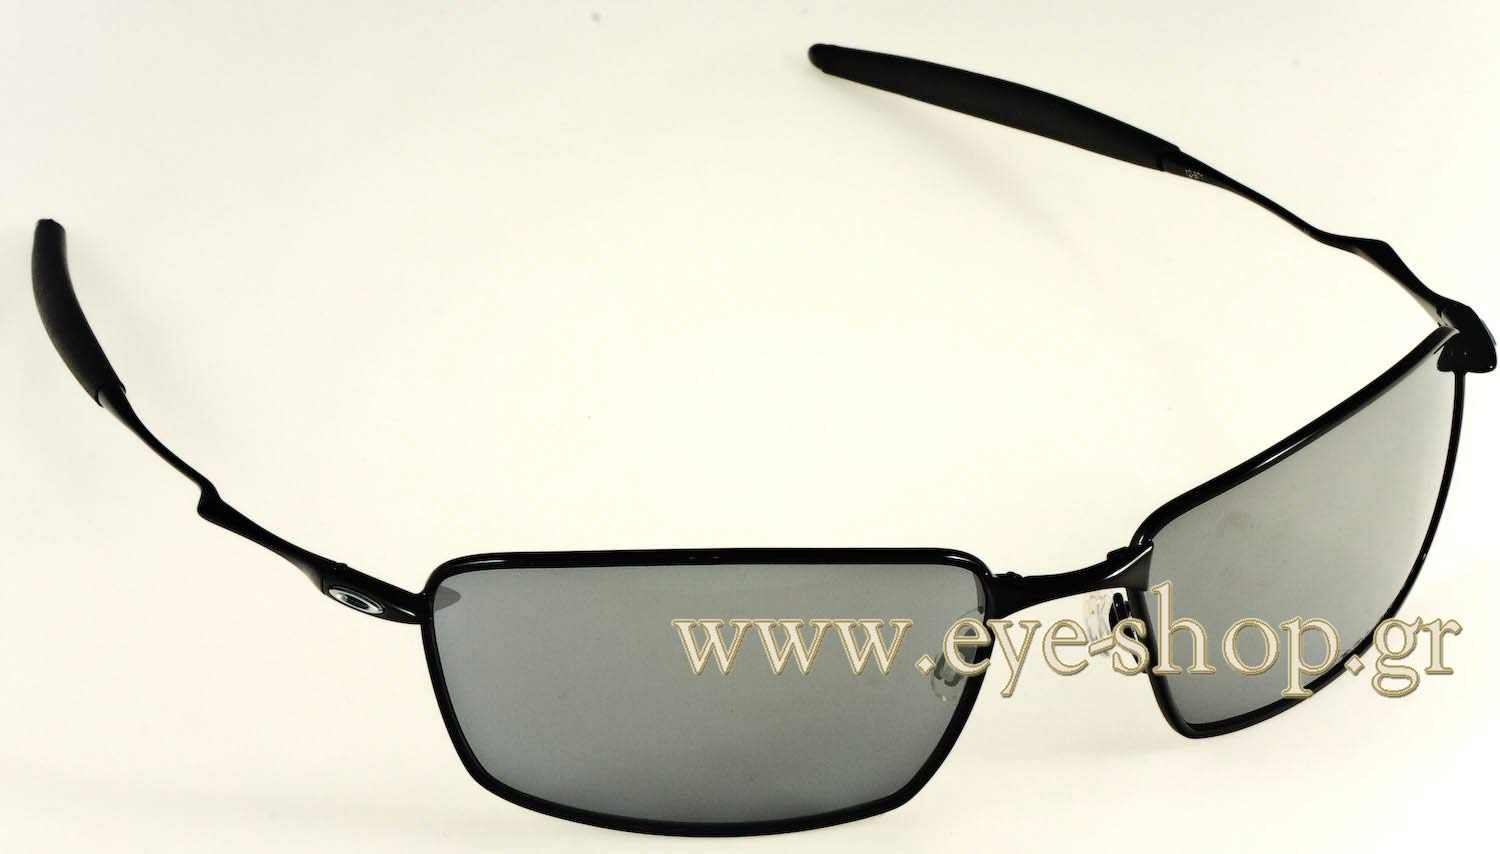 526c0d0f81d SUNGLASSES Oakley Square Whisker 4036 12-971 polarised